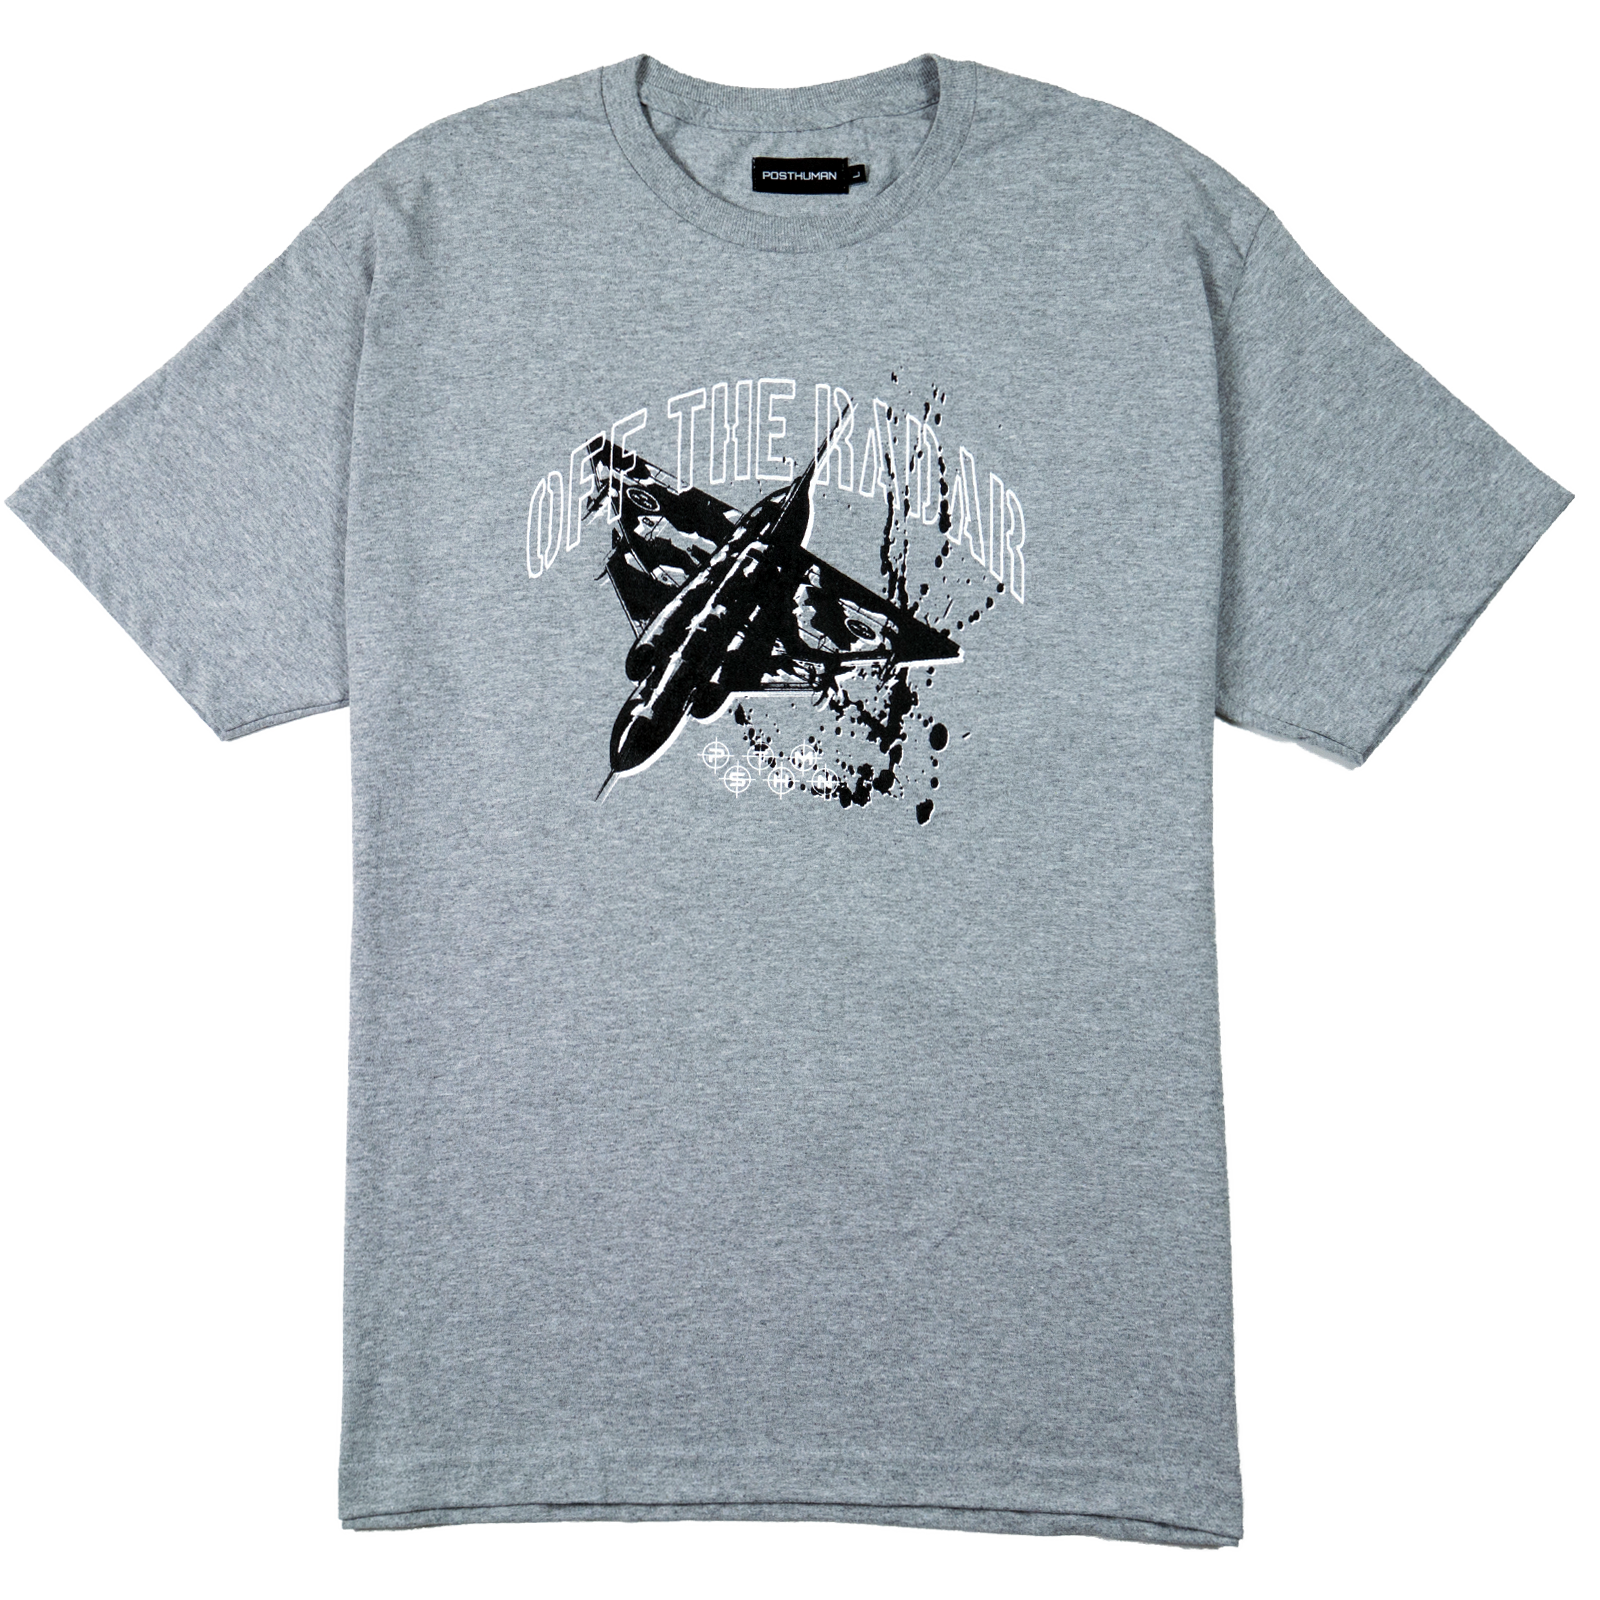 OFF THE RADAR TEE - HEATHER GREY